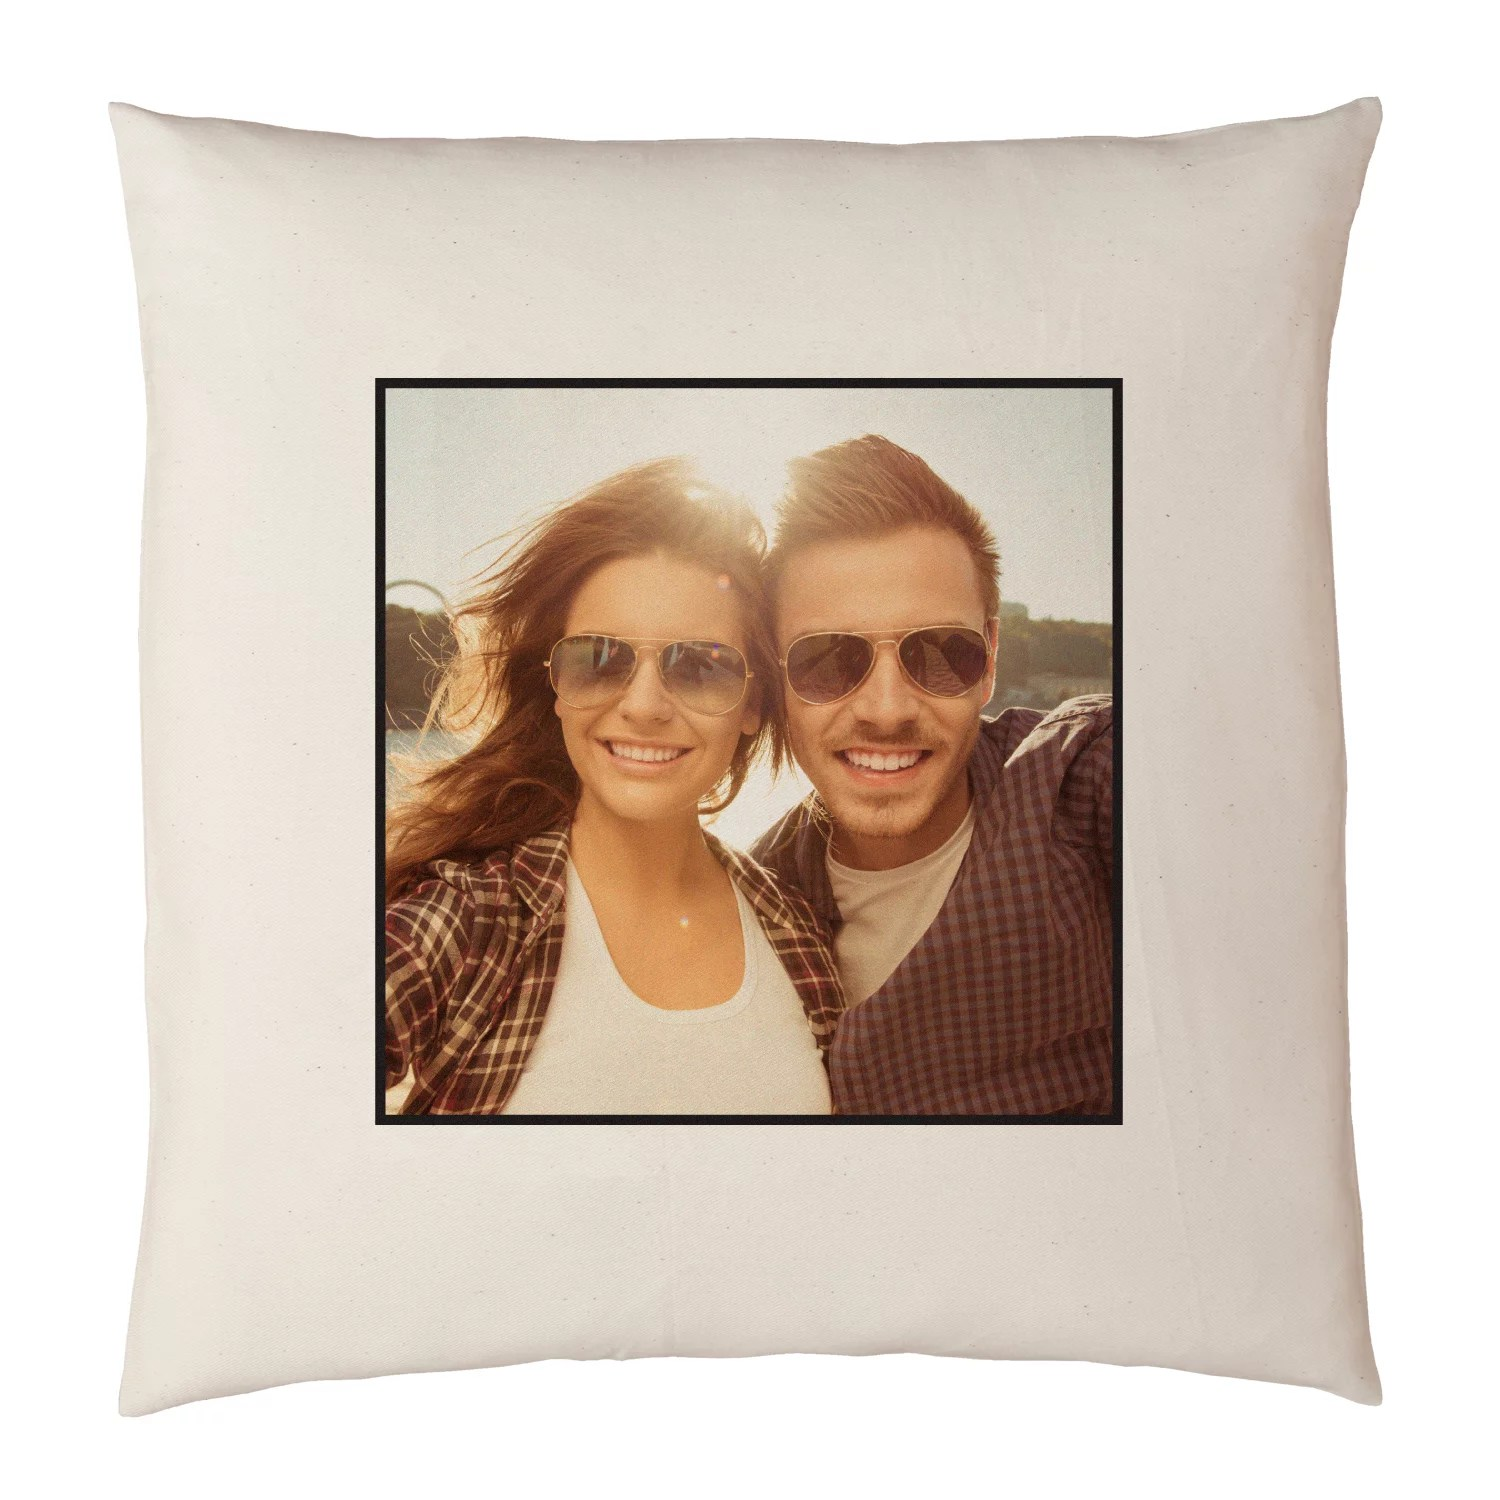 personalized photo accent pillow 15 x15 available in antique border or plain border